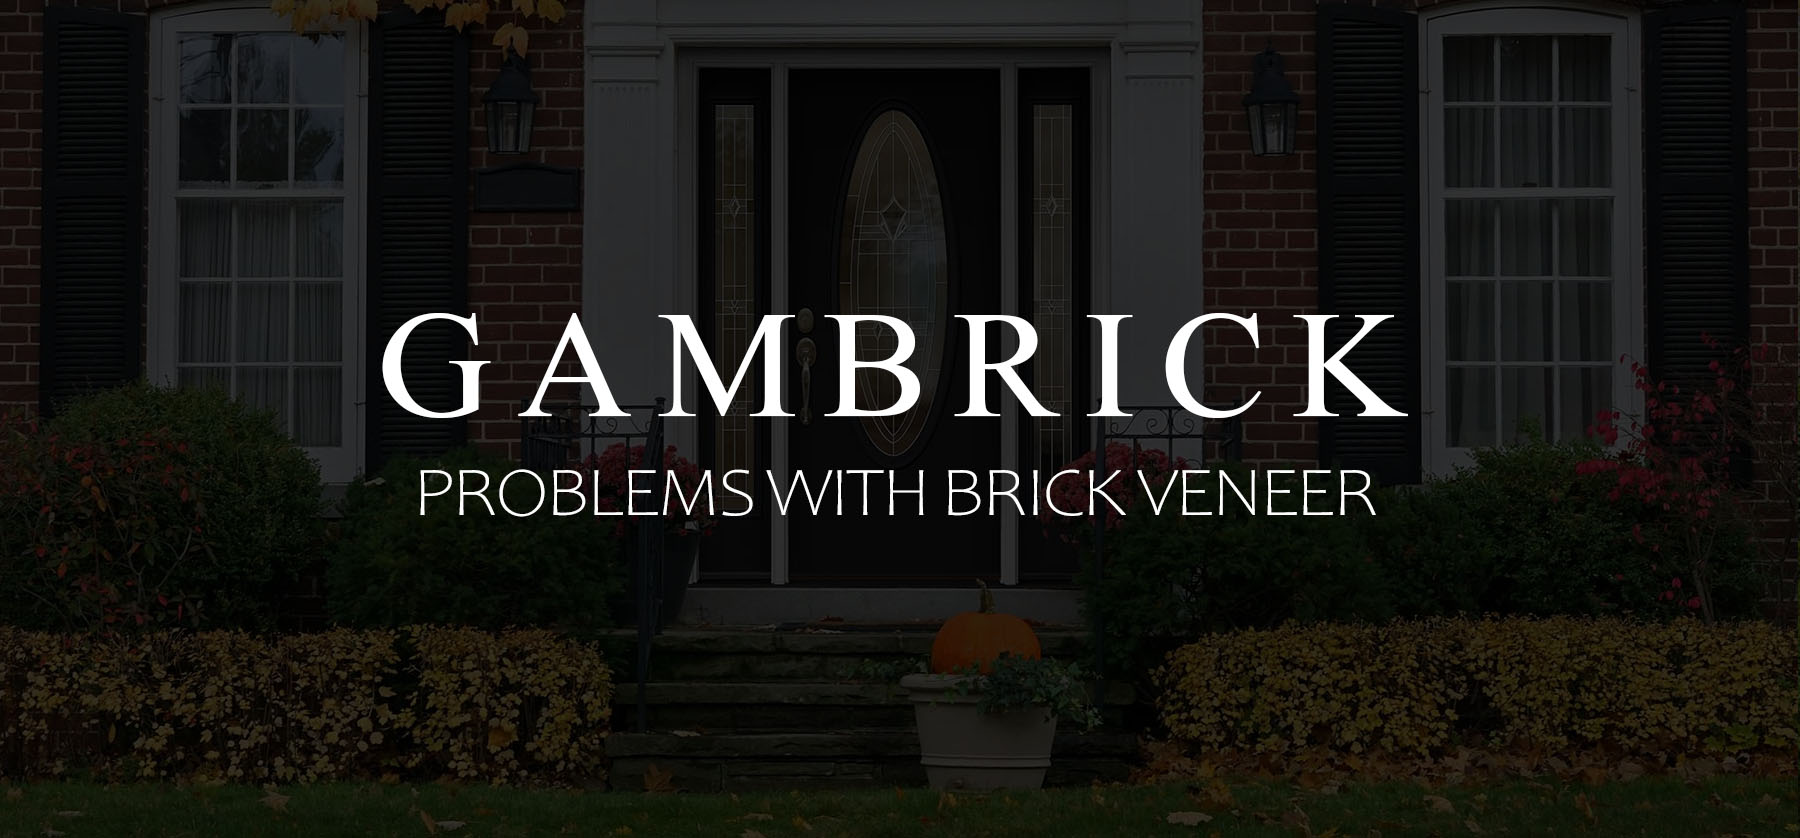 problems with brick veneer banner pic